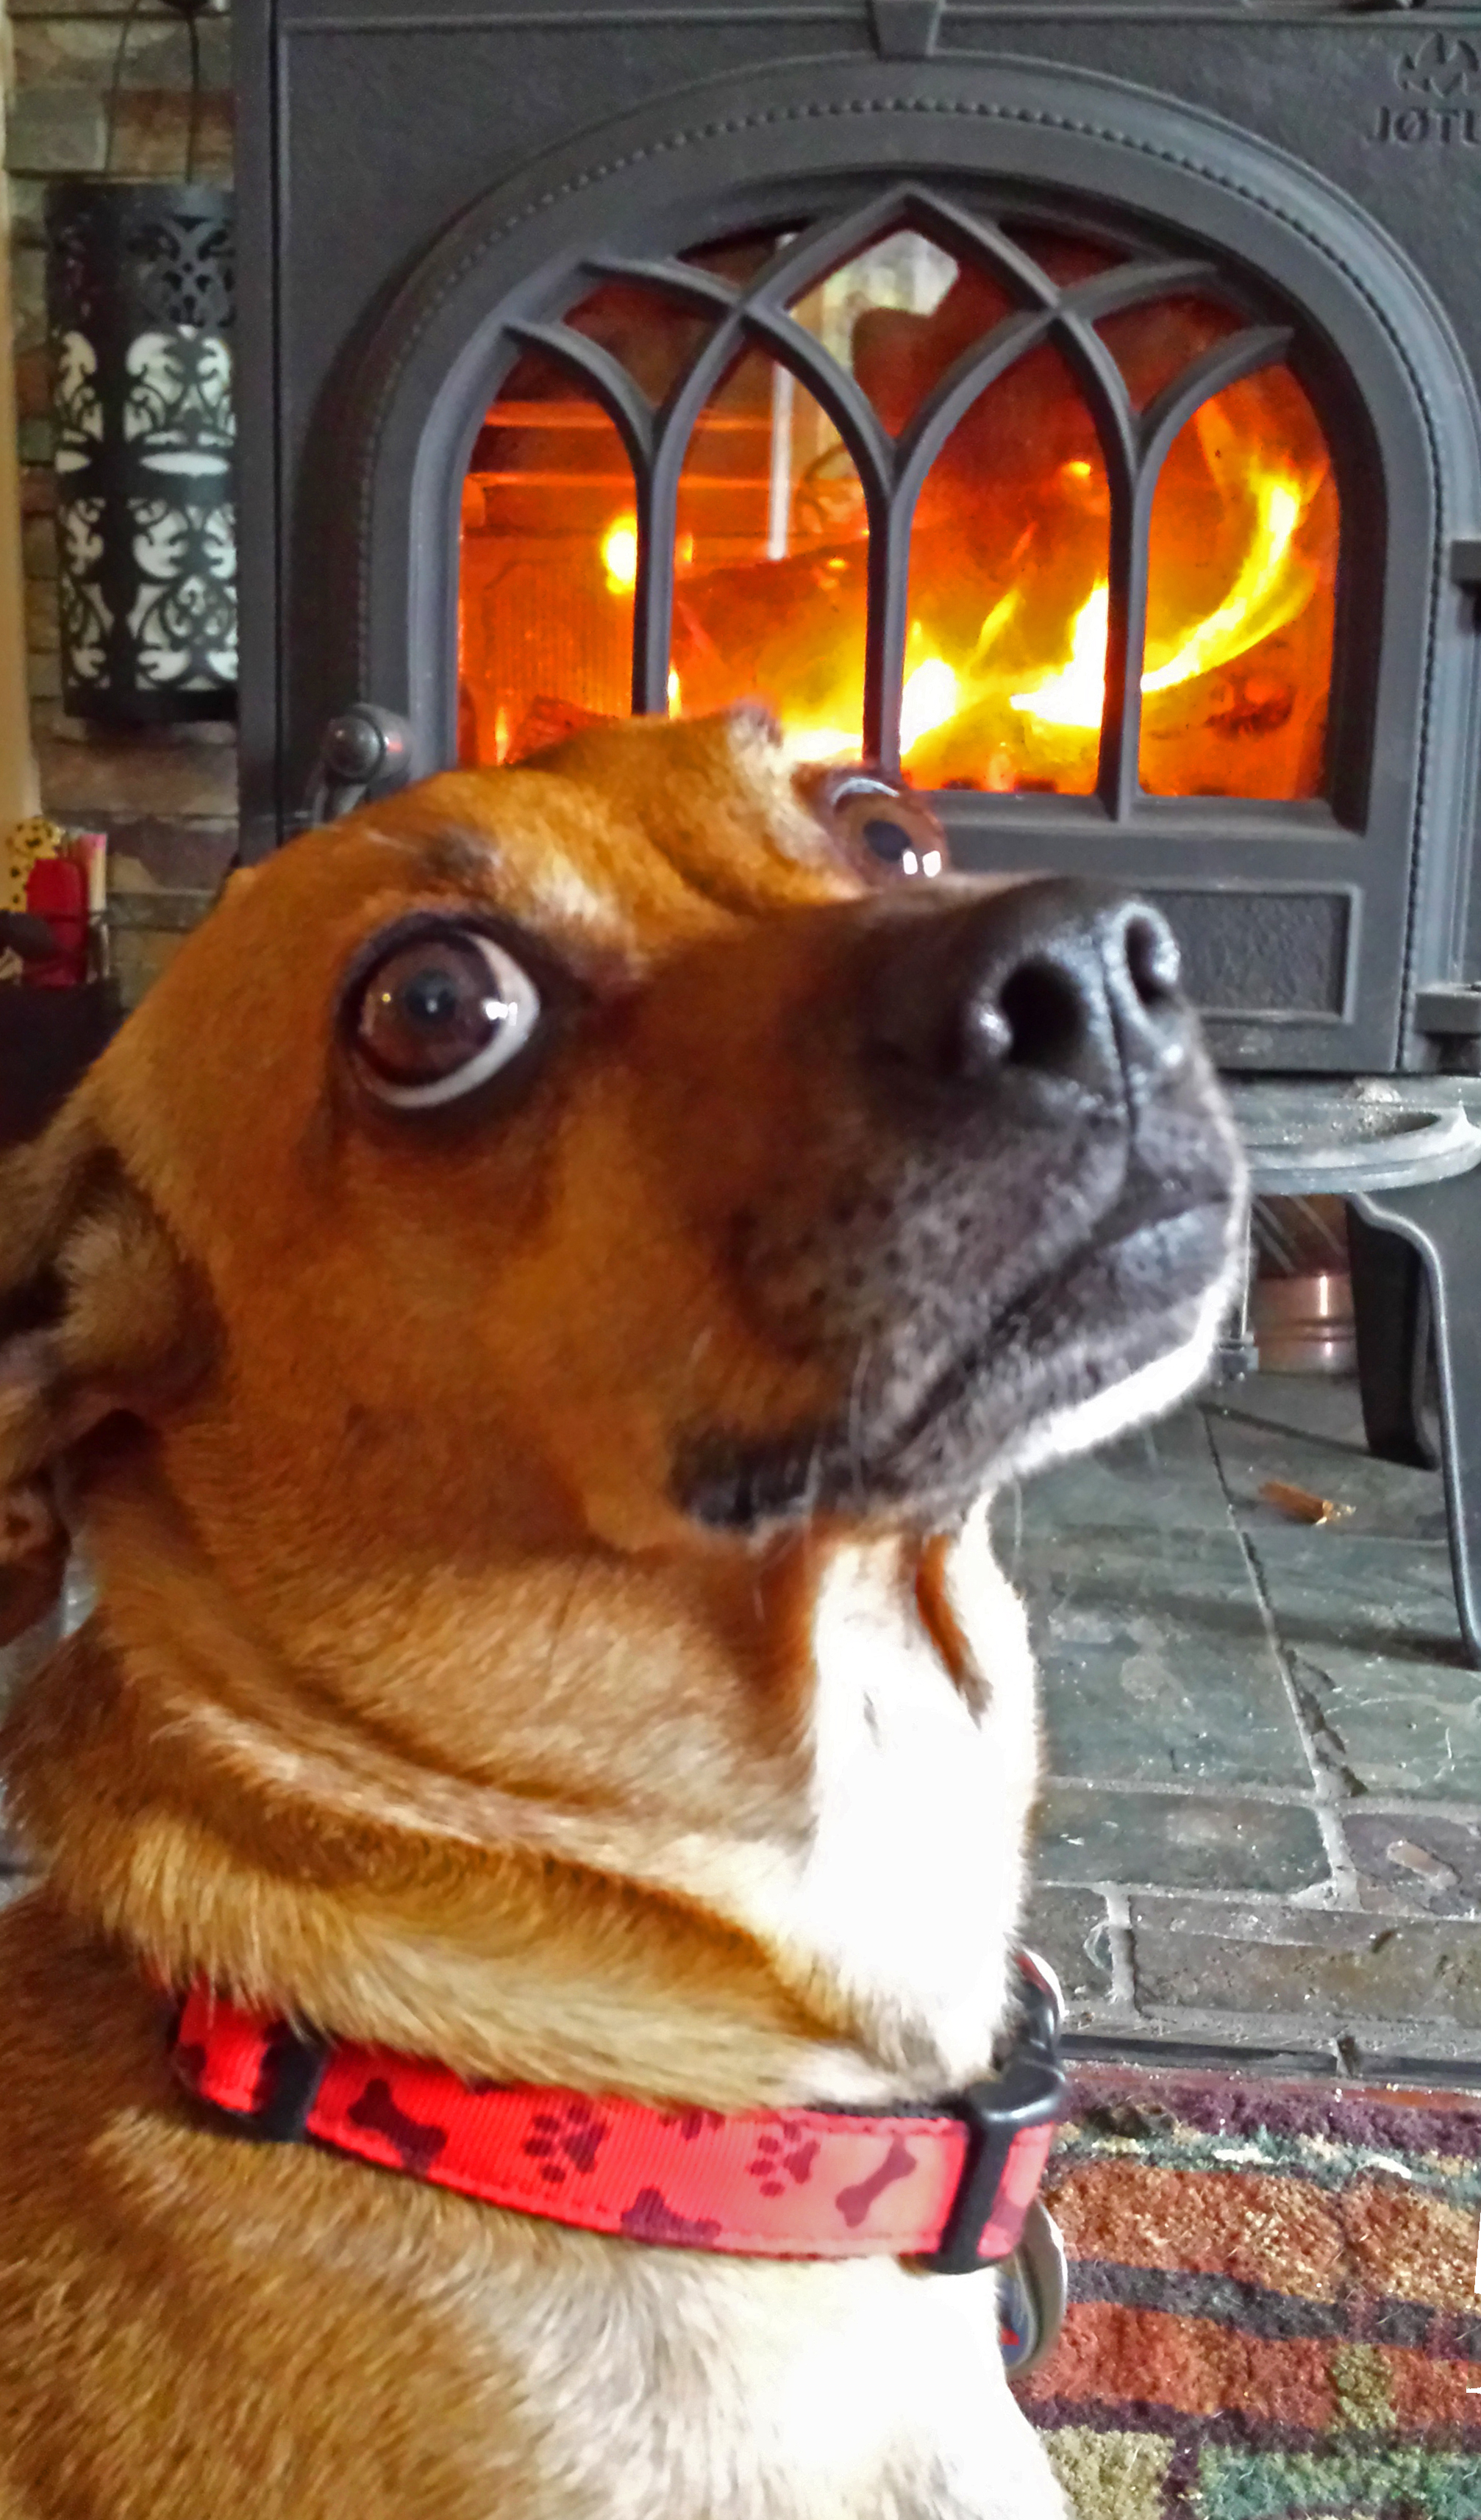 Come on baby, light my fire!            Photo: (c) Barb Ayers, DogDiary.org